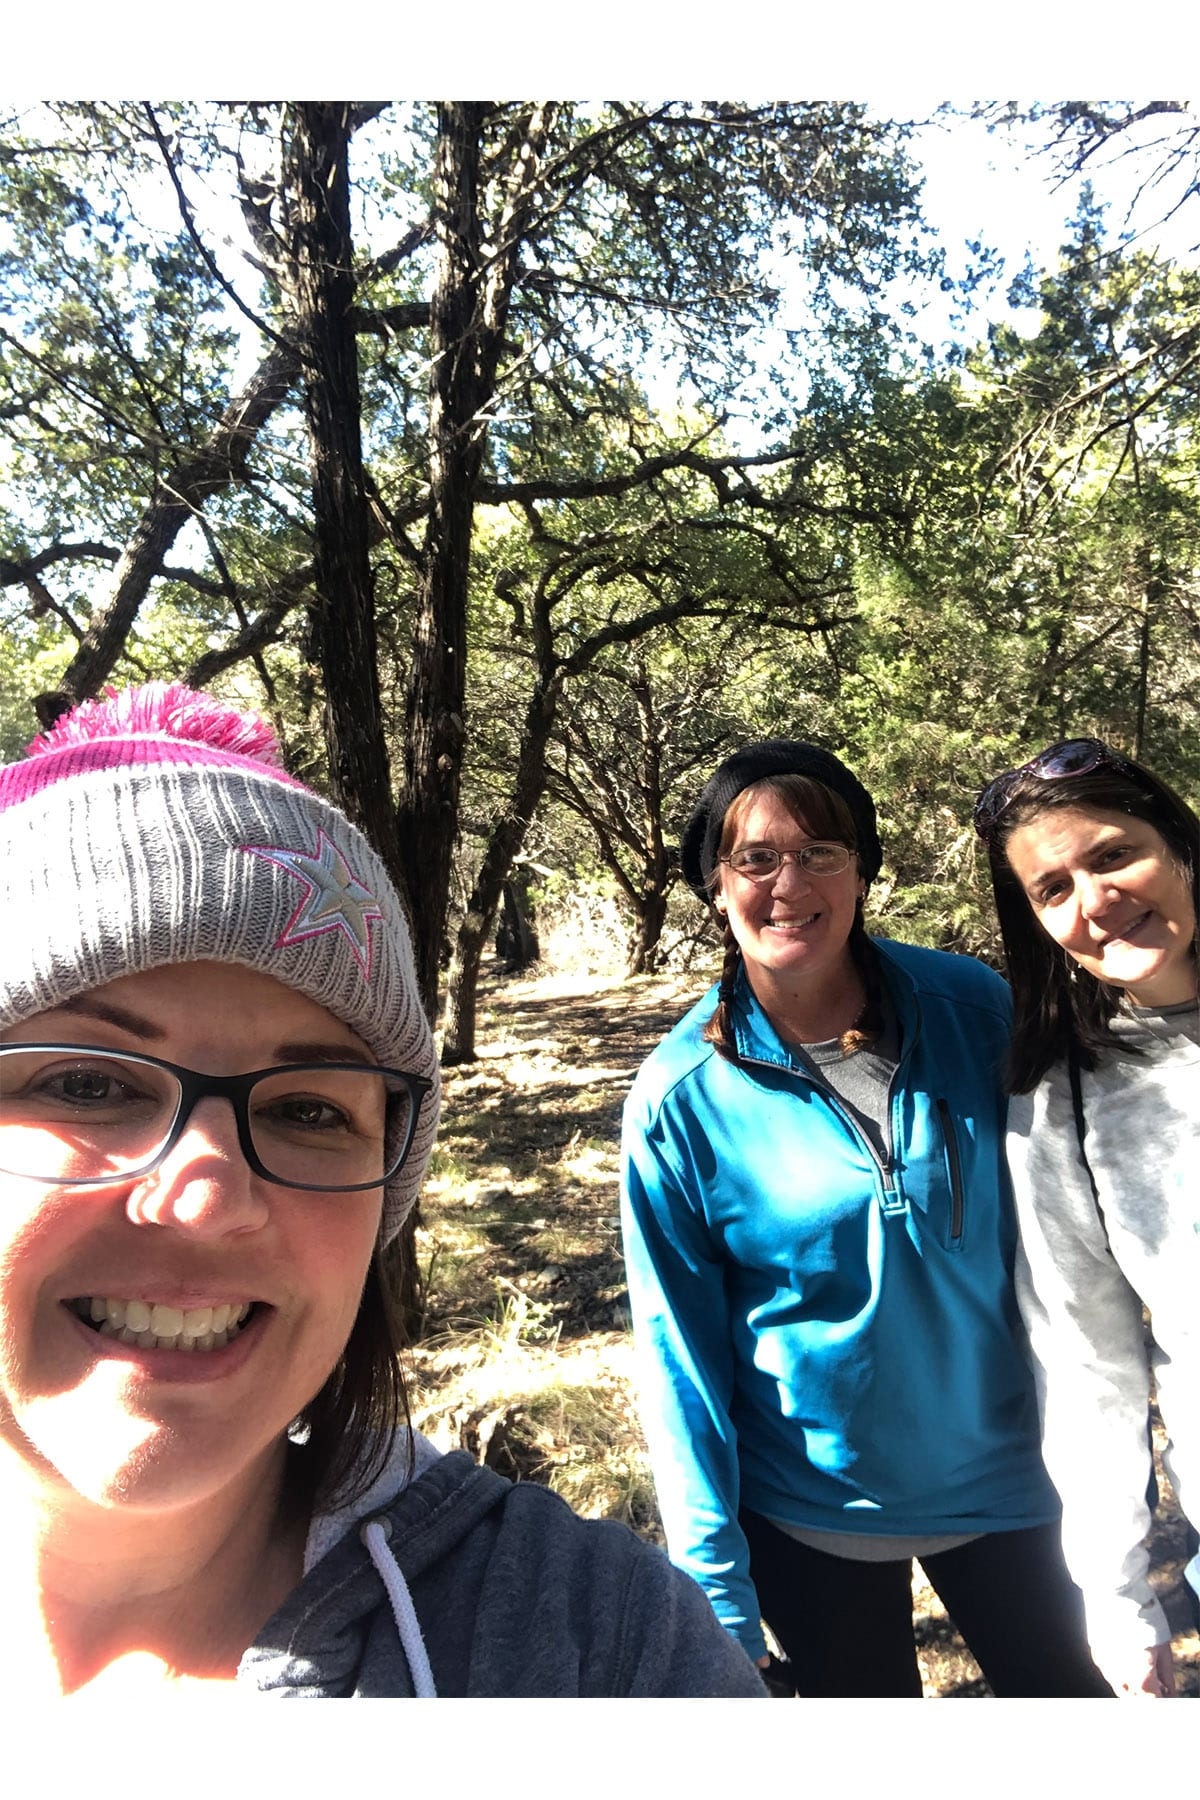 Hiking with my besties